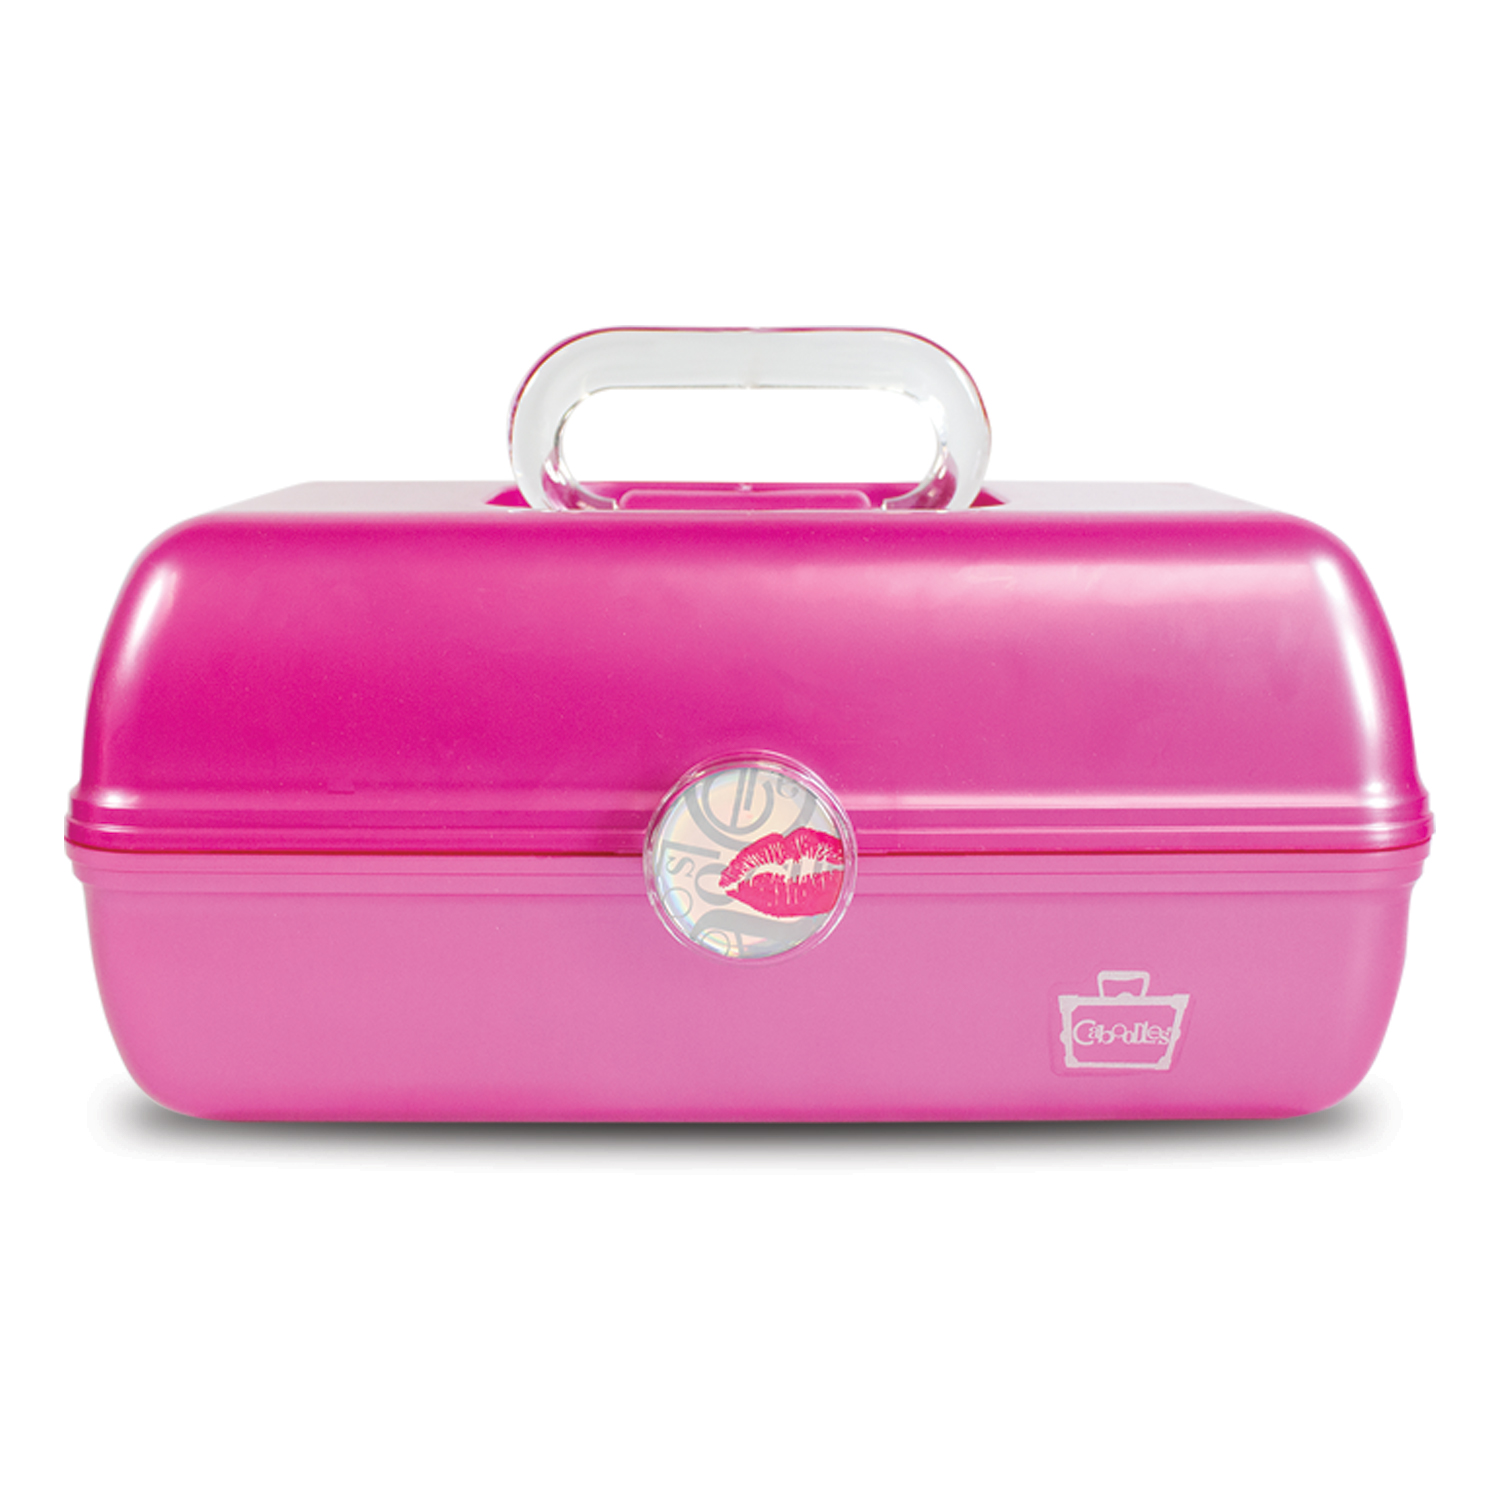 Caboodles On-the-go-girl Cosmetic Organizer, Pink